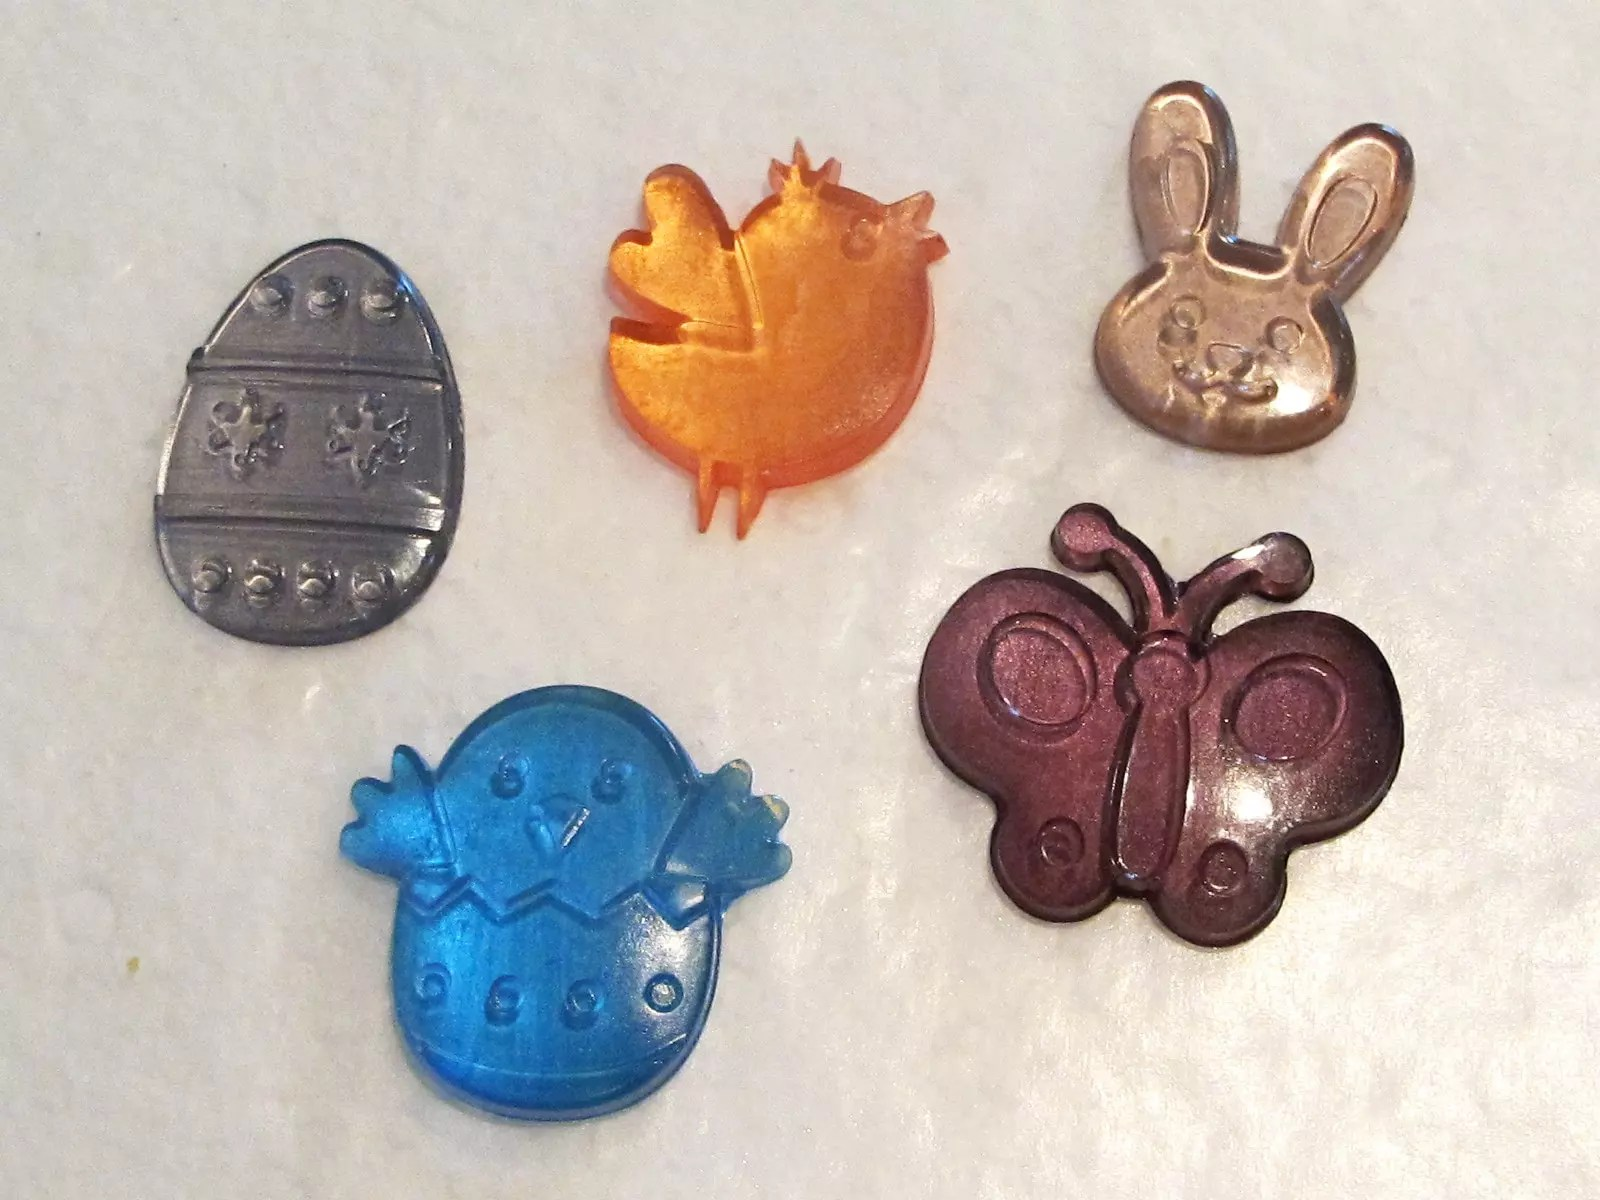 resin charms with a jewel metallic finish